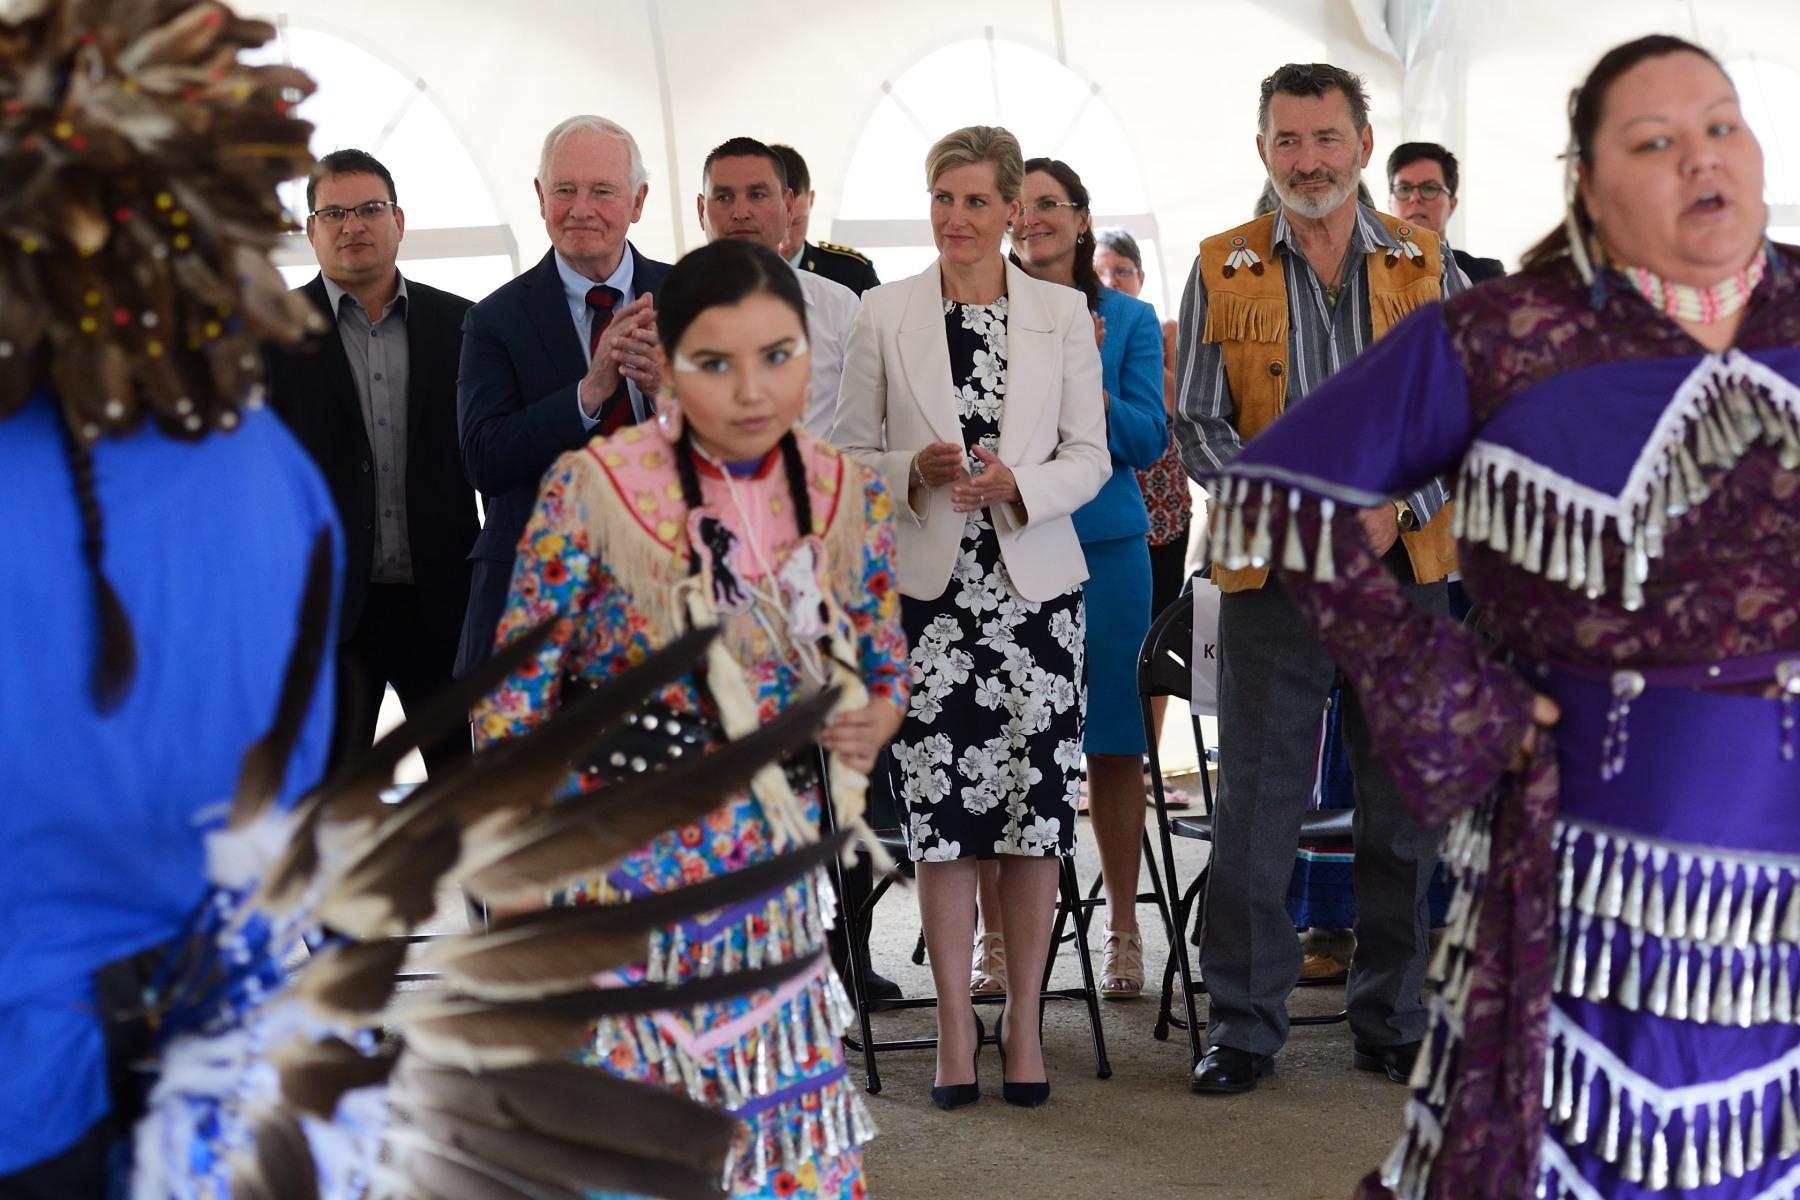 His Excellency and Her Royal Highness concluded their visit with a gathering at Fort McMurray #468 First Nation, a small community of over 300 residents who came to the rescue of thousands of evacuees before its members had to flee the area themselves due to the threatening wildfires.